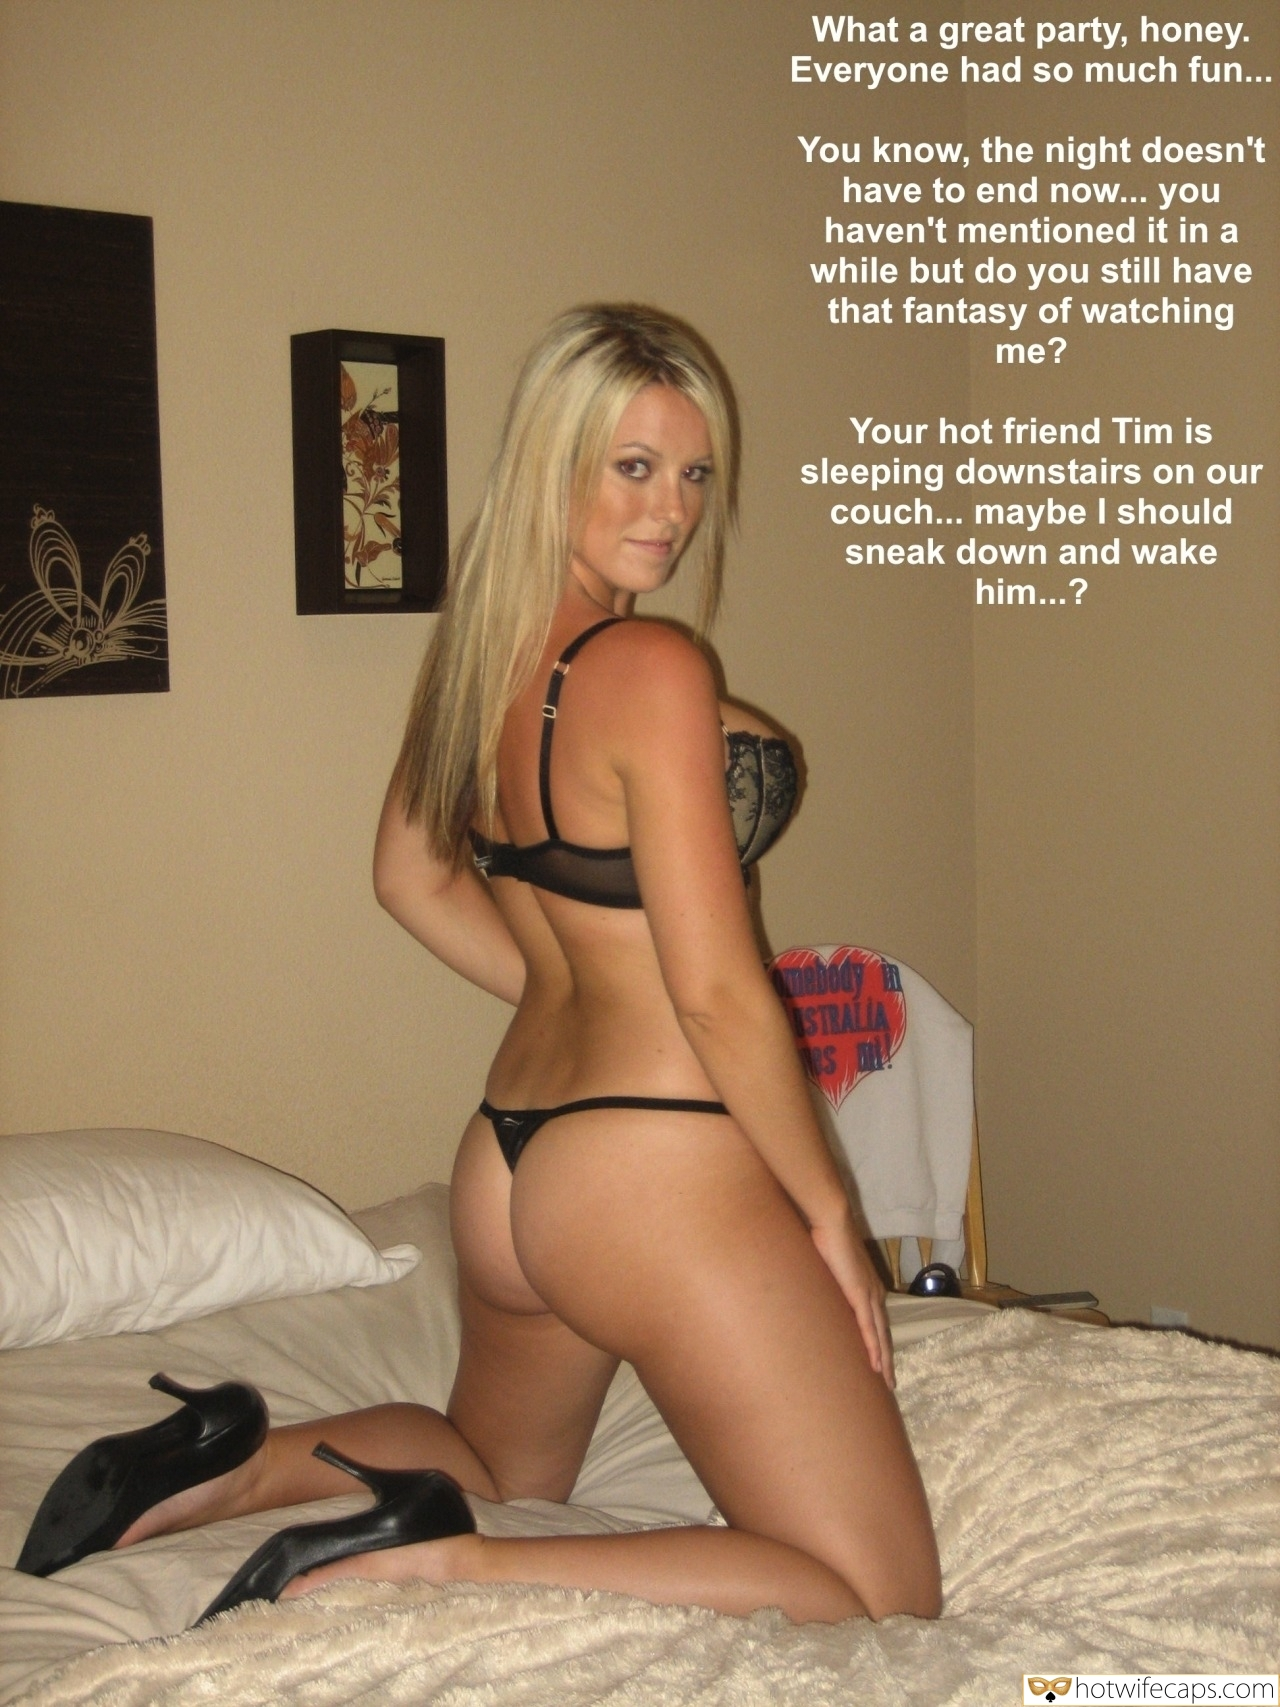 Sexy Memes Friends Dirty Talk hotwife caption: What a great party, honey. Everyone had so much fun… You know, the night doesn't have to end now… you haven't mentioned it in a while but do you still have that fantasy of watching me? Your hot friend Tim...